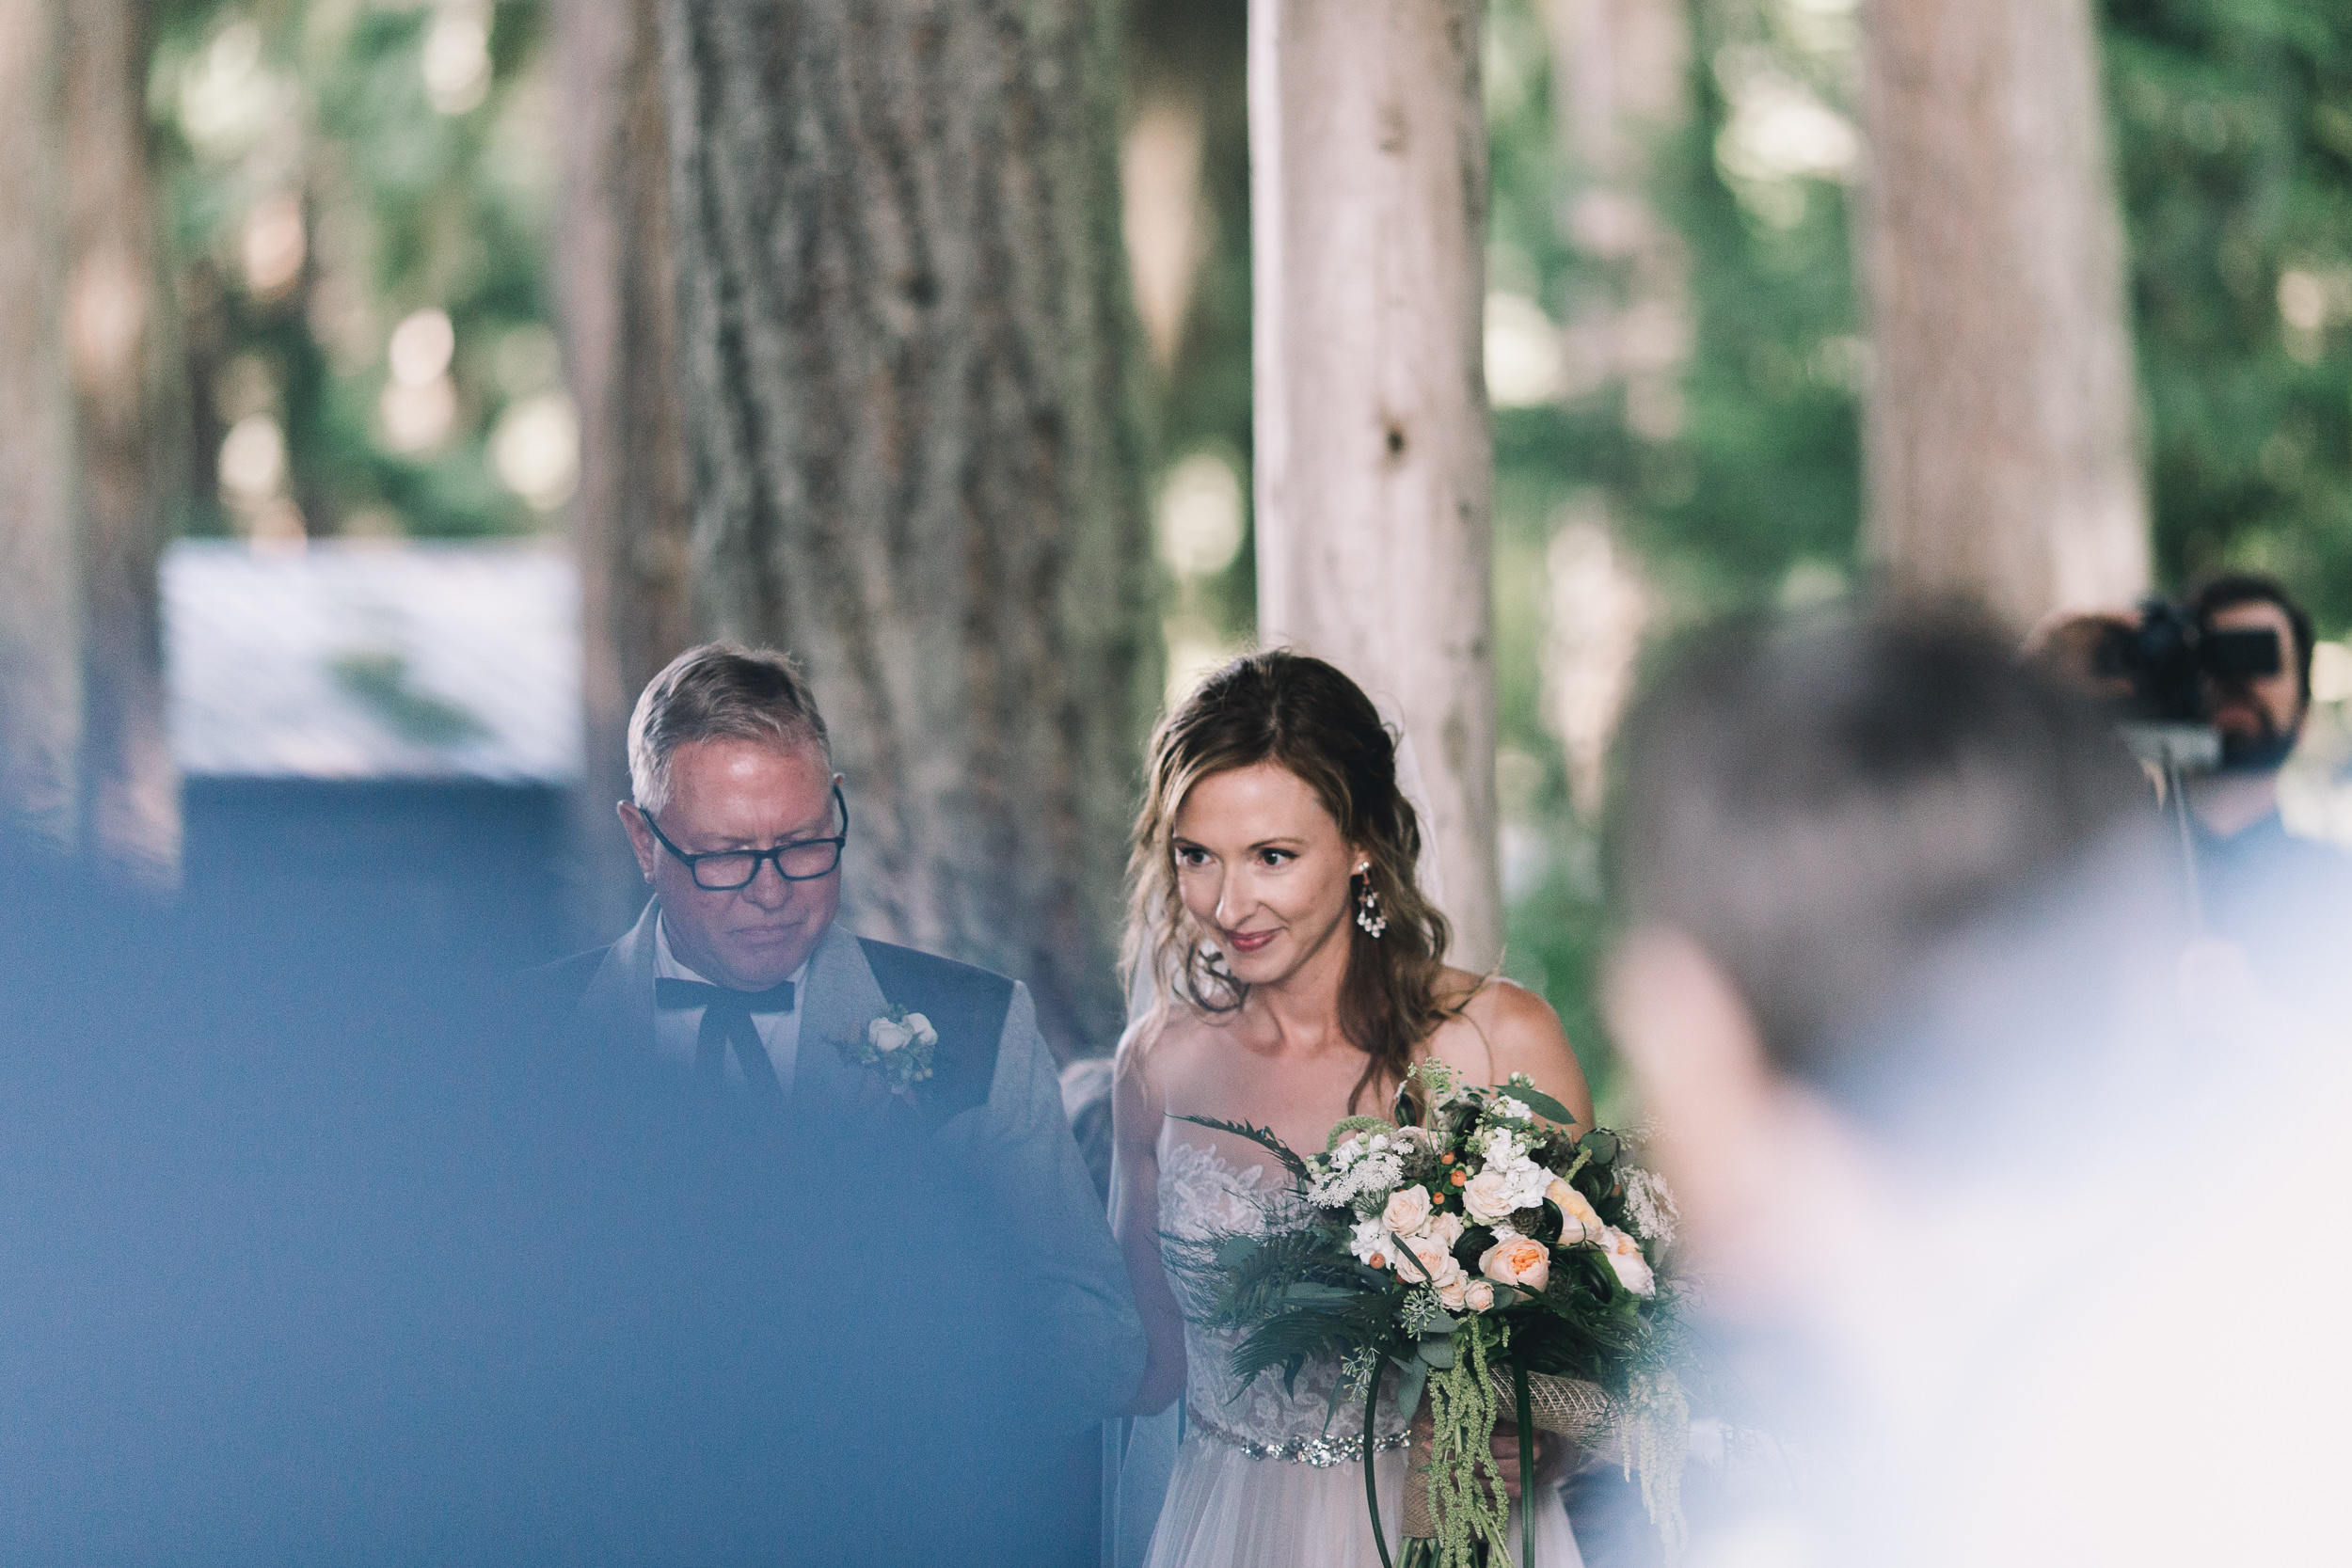 kitsap memorial state park bride walks down aisle with father